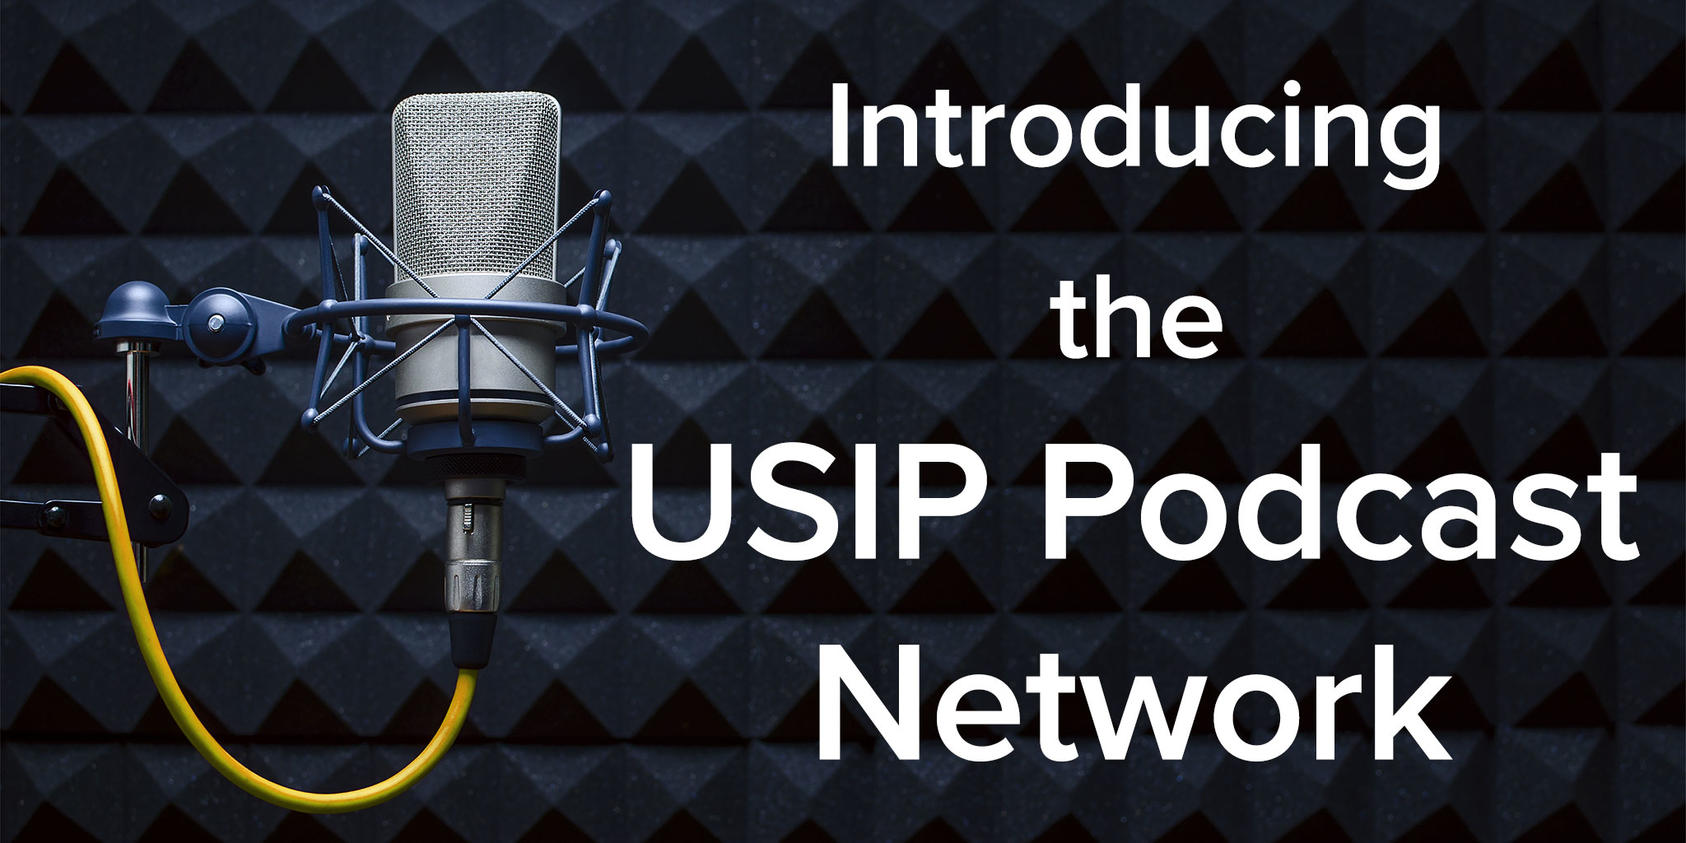 USIP Podcast Network